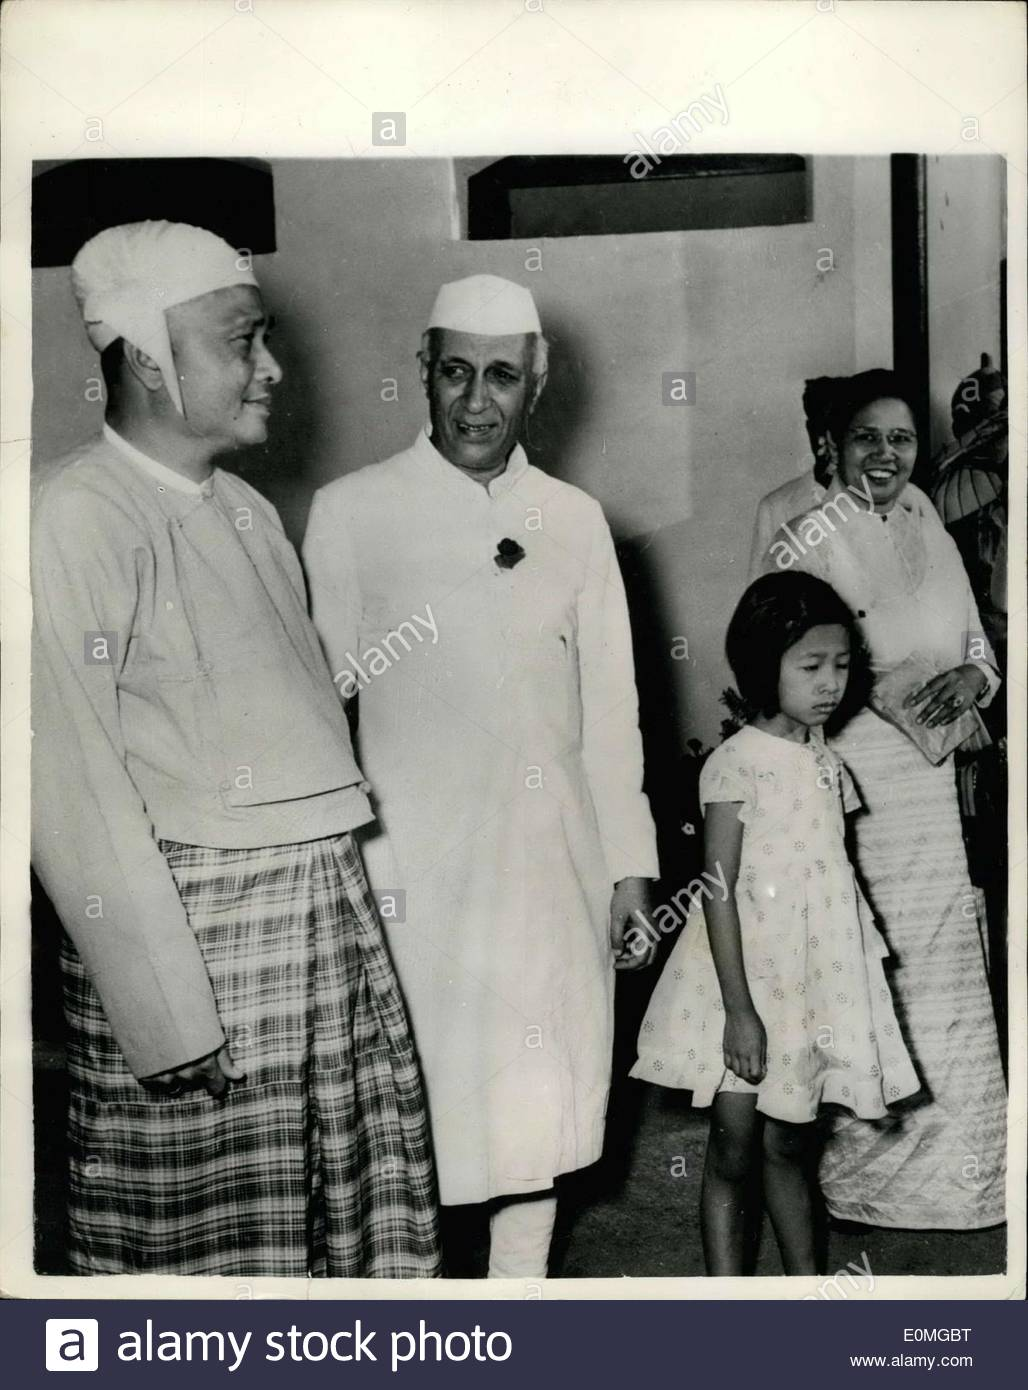 apr-03-1955-the-prime-minister-of-burma-arrives-in-india-greeted-by-E0MGBT.jpg